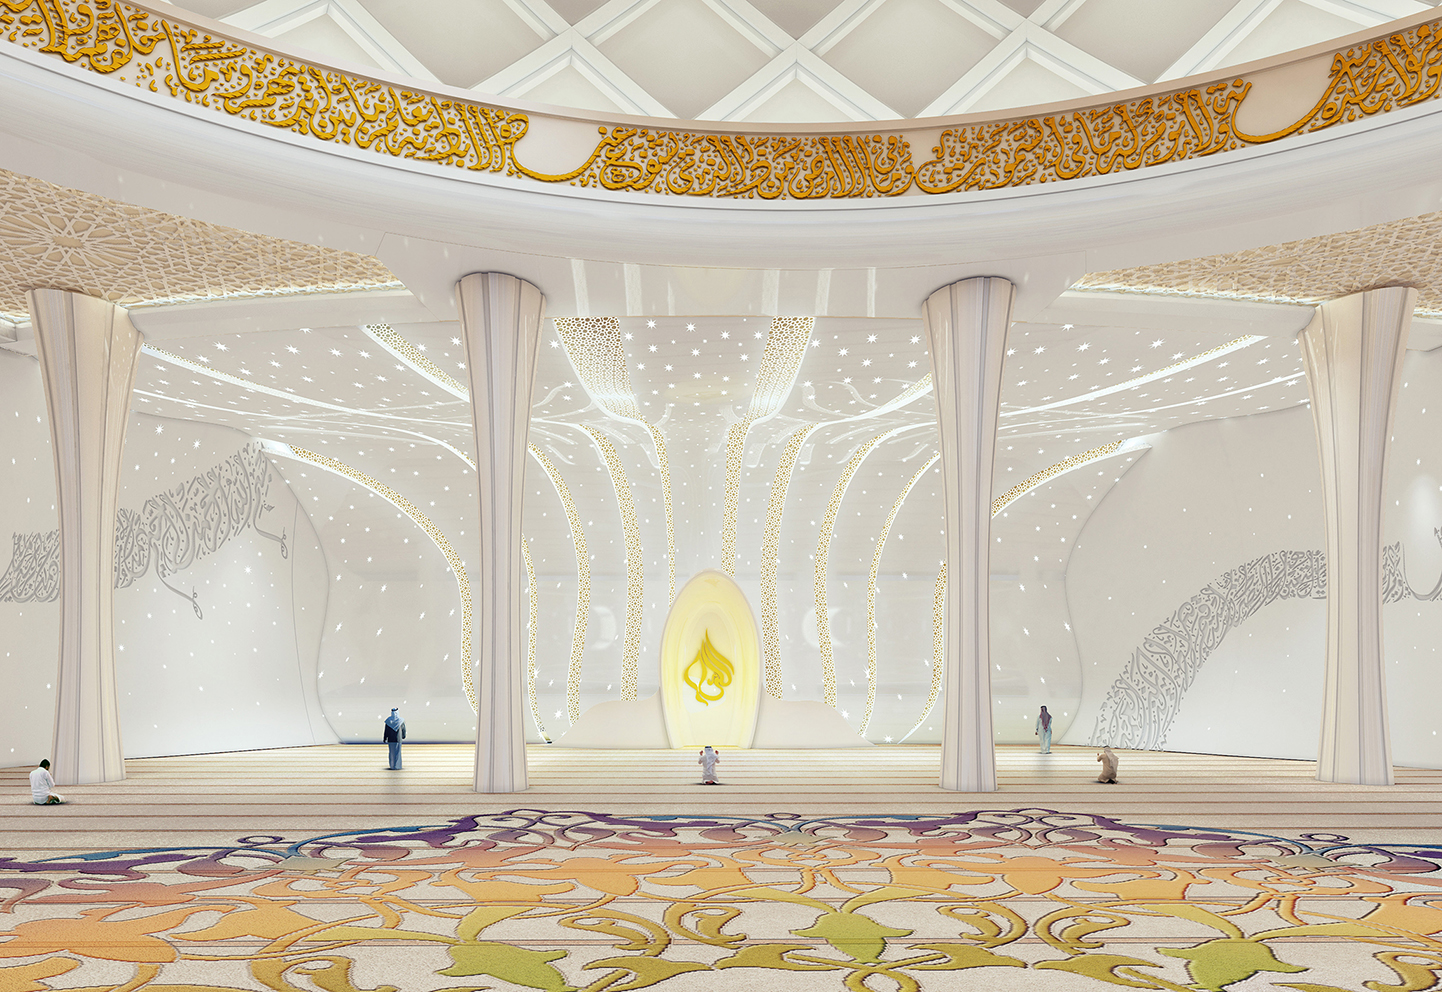 interior design of the mosque with motifs and ornamental details